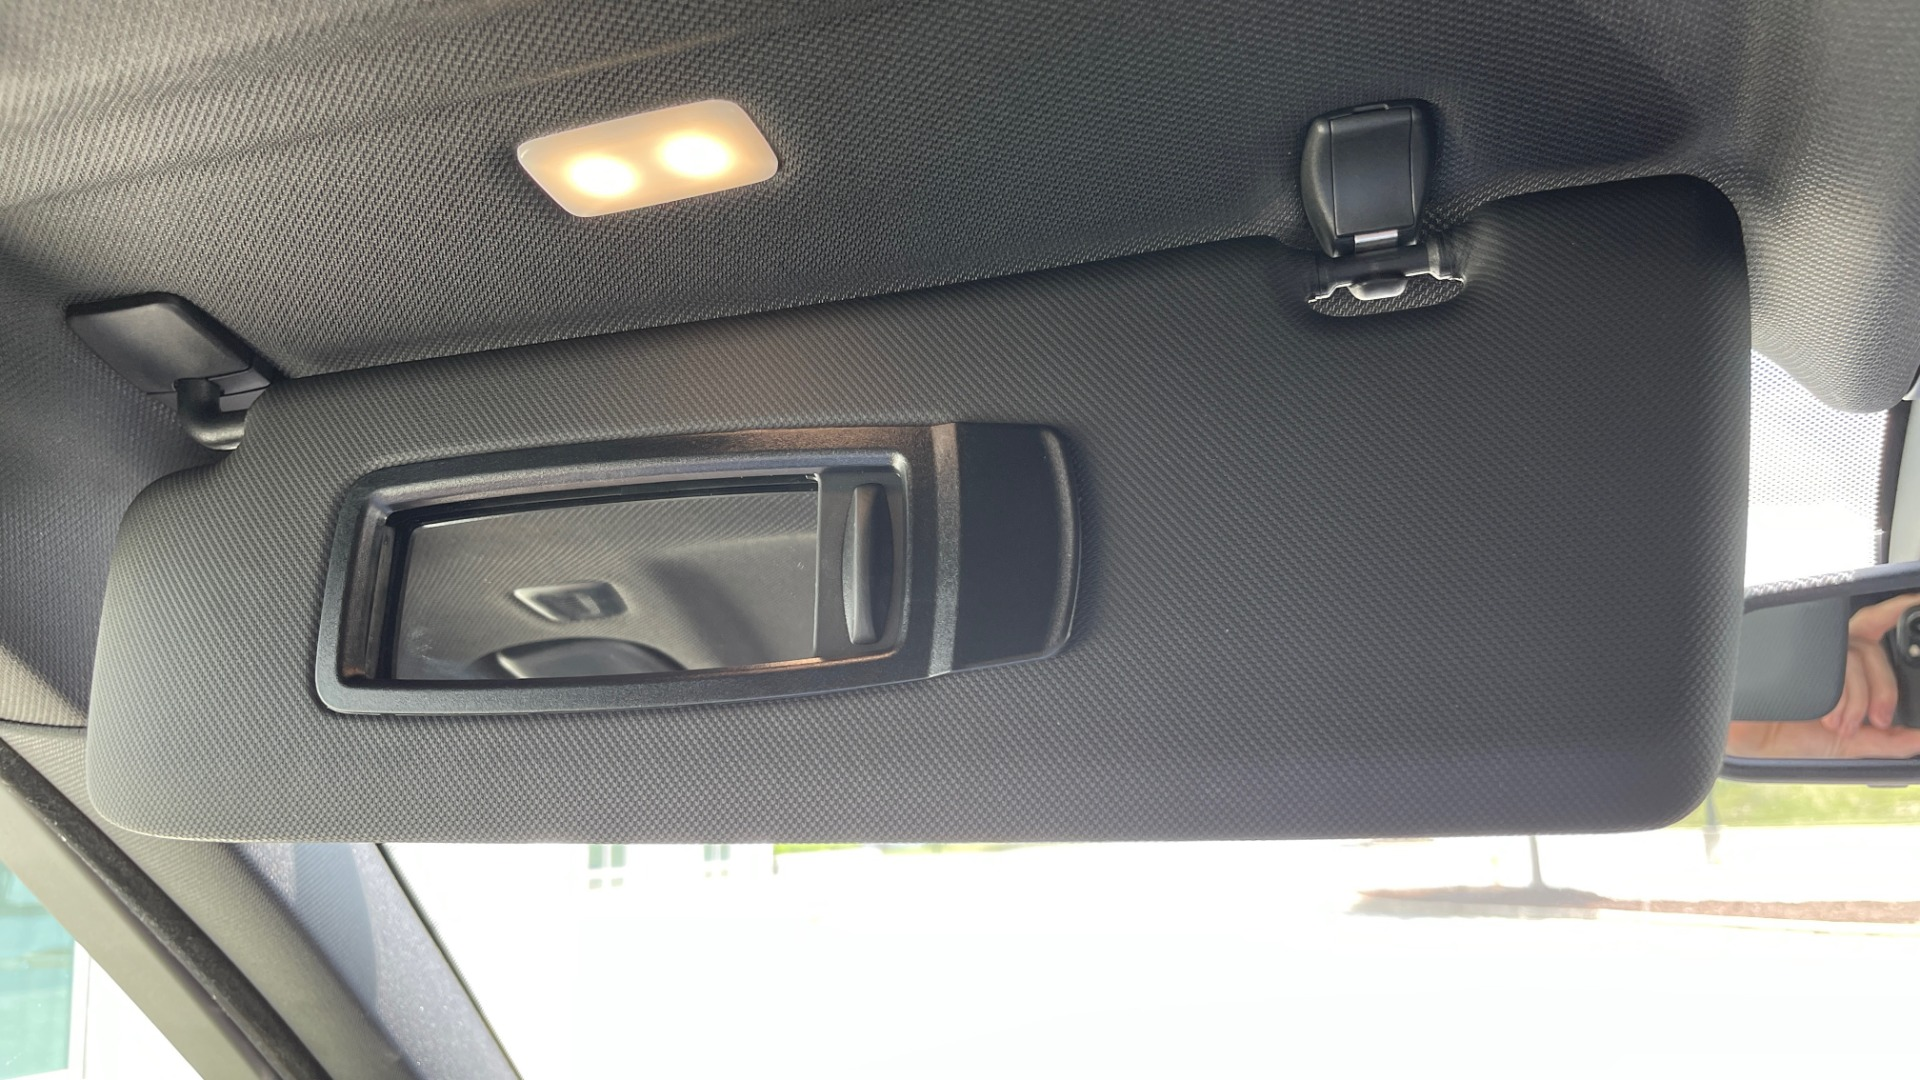 Used 2018 BMW X5 XDRIVE35I PREMIUM / DRVR ASST / WIRELESS CHARGING / CAMERAS for sale $46,995 at Formula Imports in Charlotte NC 28227 61